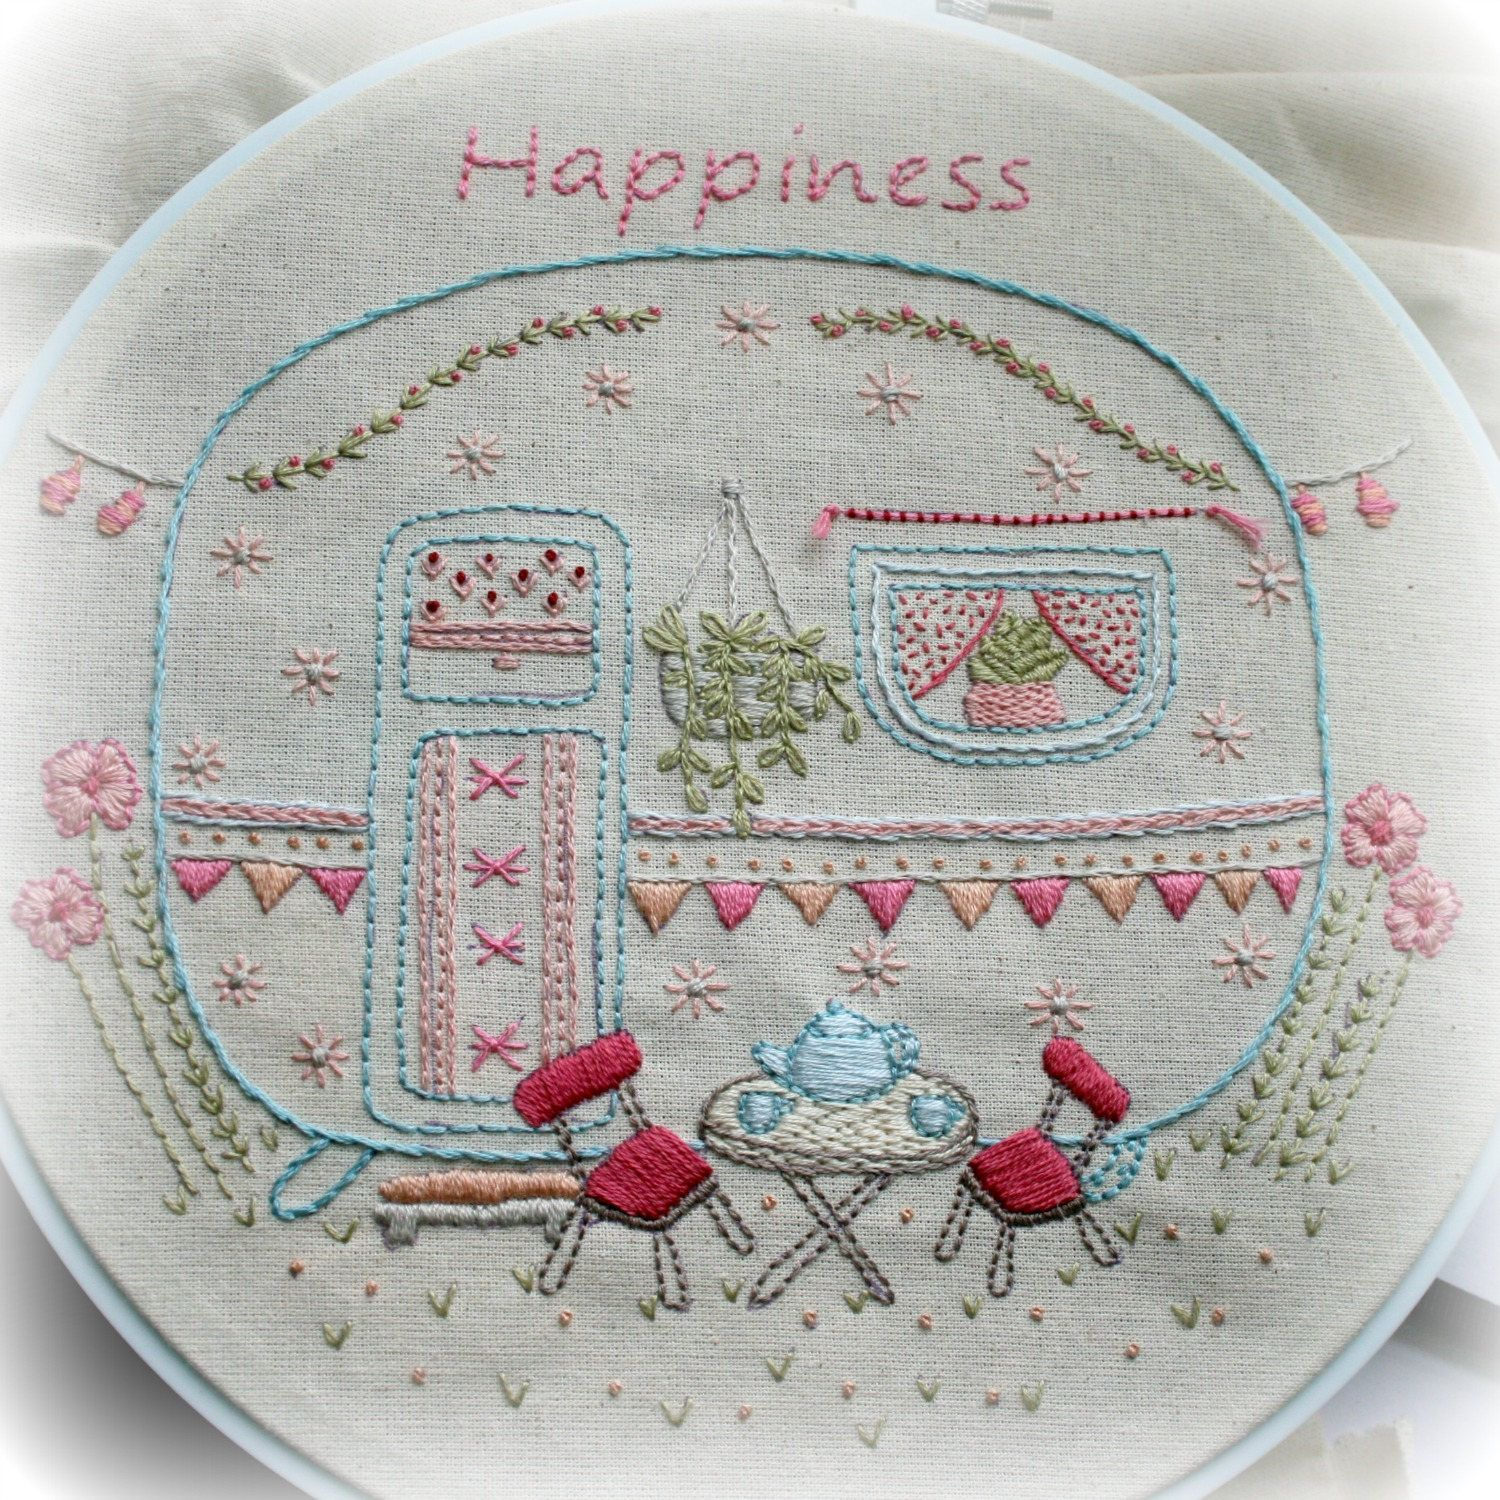 This pretty little caravan embroidery pattern has been created so